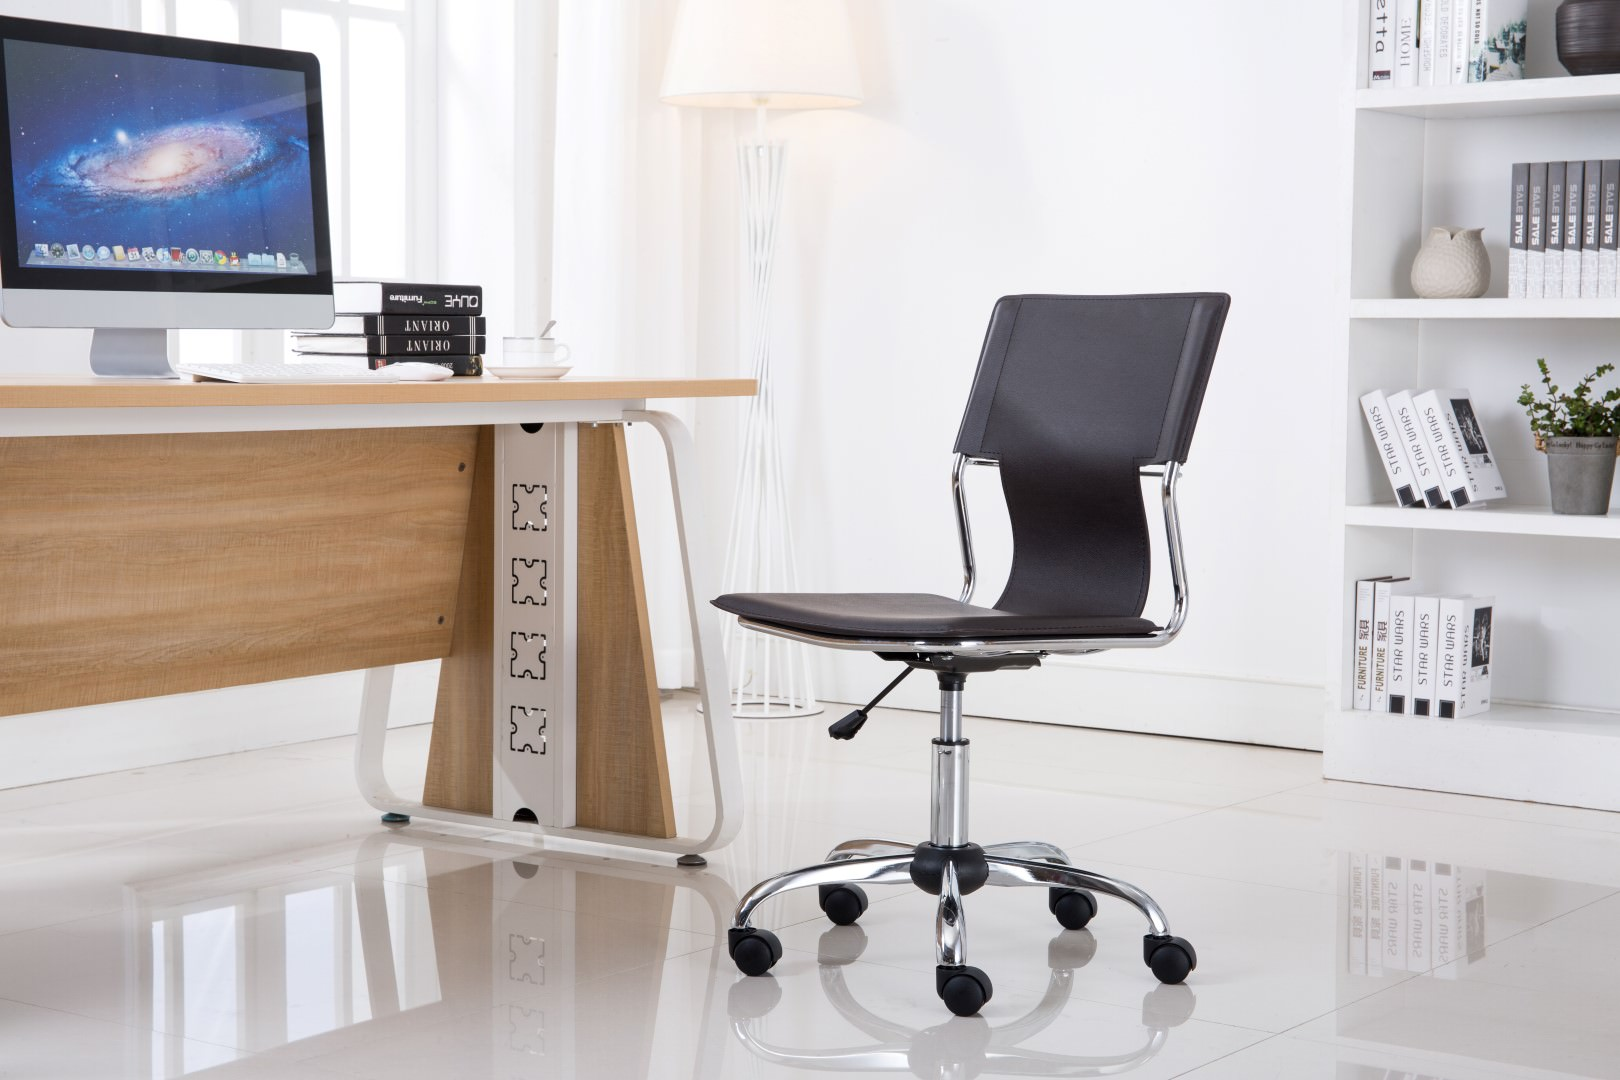 swivel office chair without arms rocking and ottoman set porthos home with pvc upholstery 360 degree adjustable height